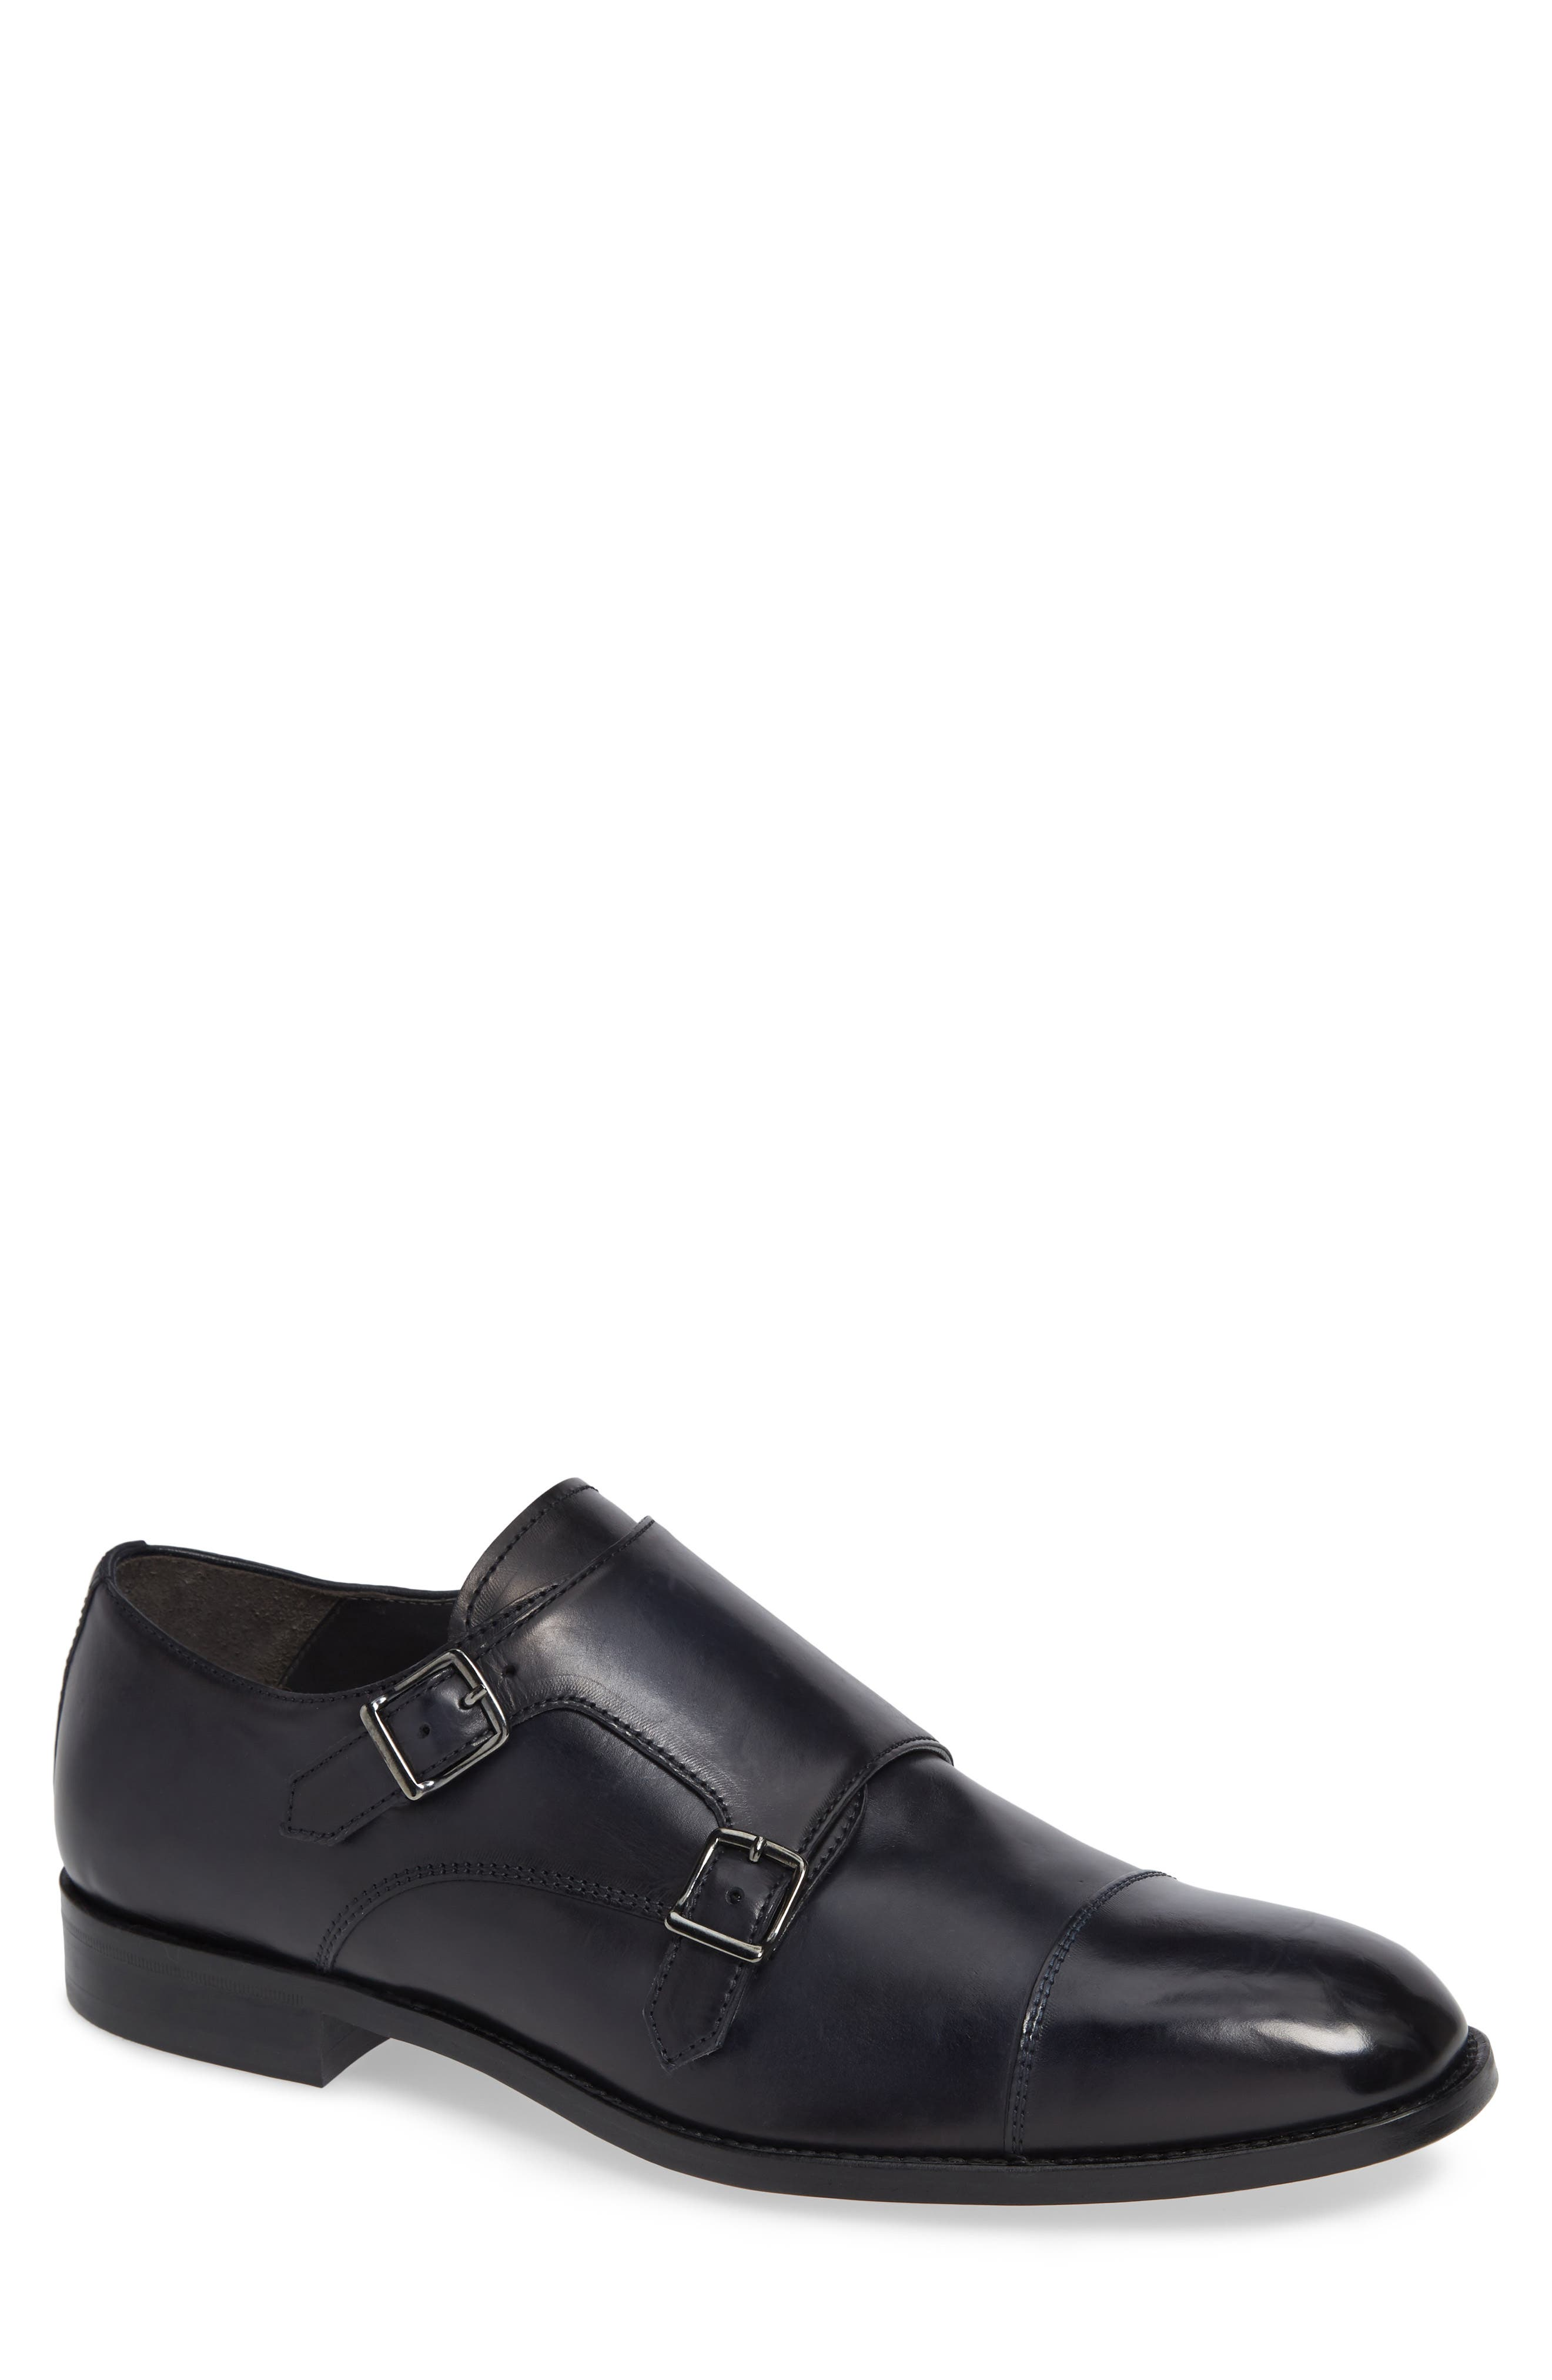 TO BOOT NEW YORK, Quentin Cap Toe Monk Shoe, Main thumbnail 1, color, BLUE MARINE LEATHER